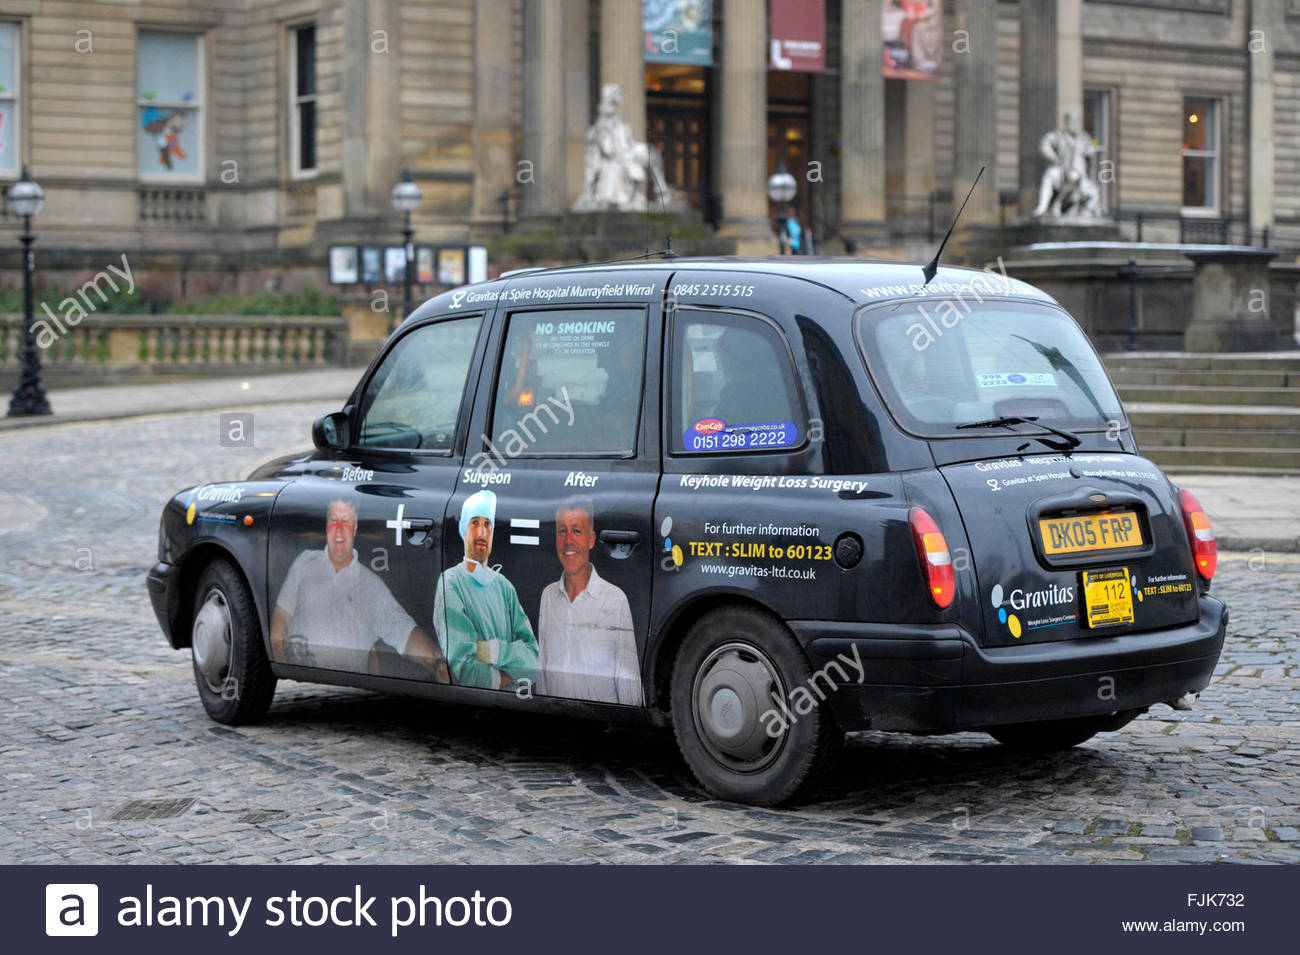 Liverpool Hackney Cab Taxi - Stock Image